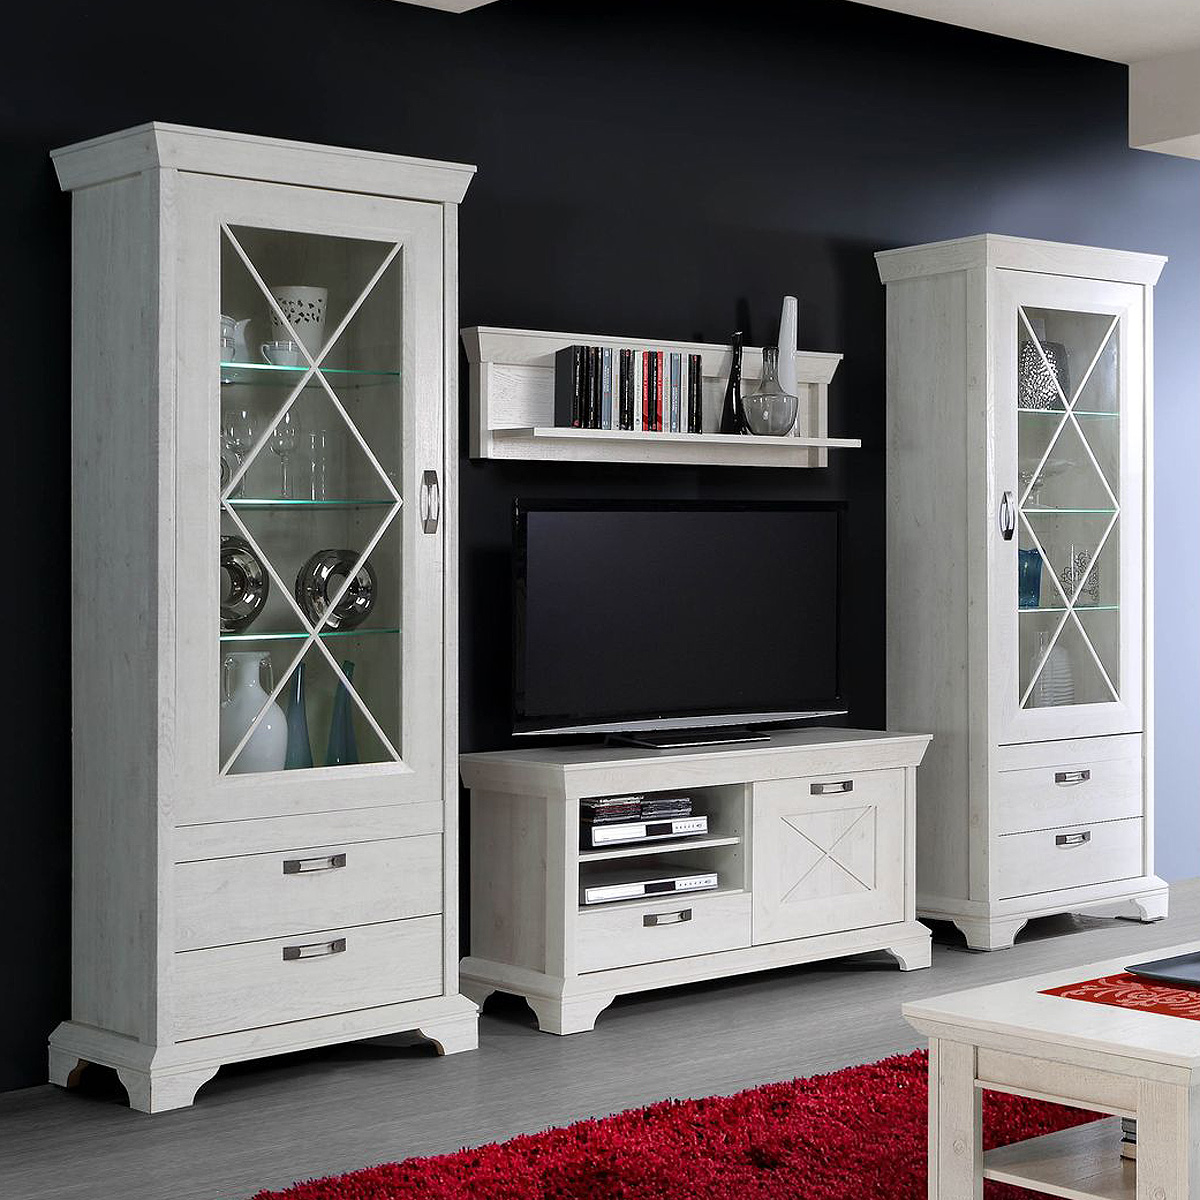 bunte retro wanduhr. Black Bedroom Furniture Sets. Home Design Ideas